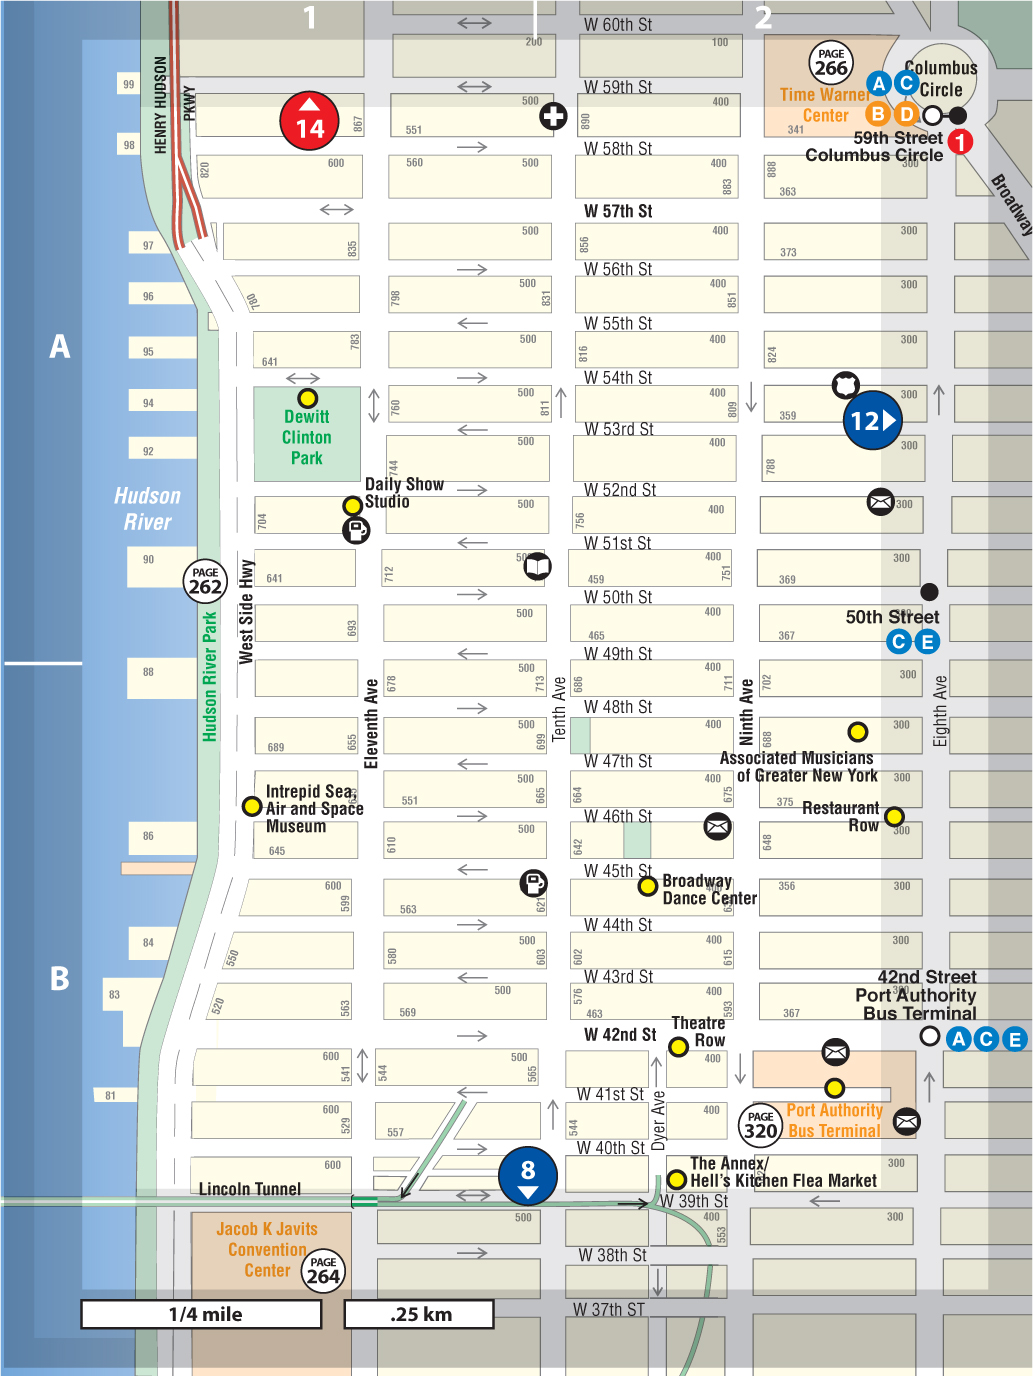 Hells Kitchen New York Map.Hell S Kitchen Not For Tourists Guide To New York City Not For